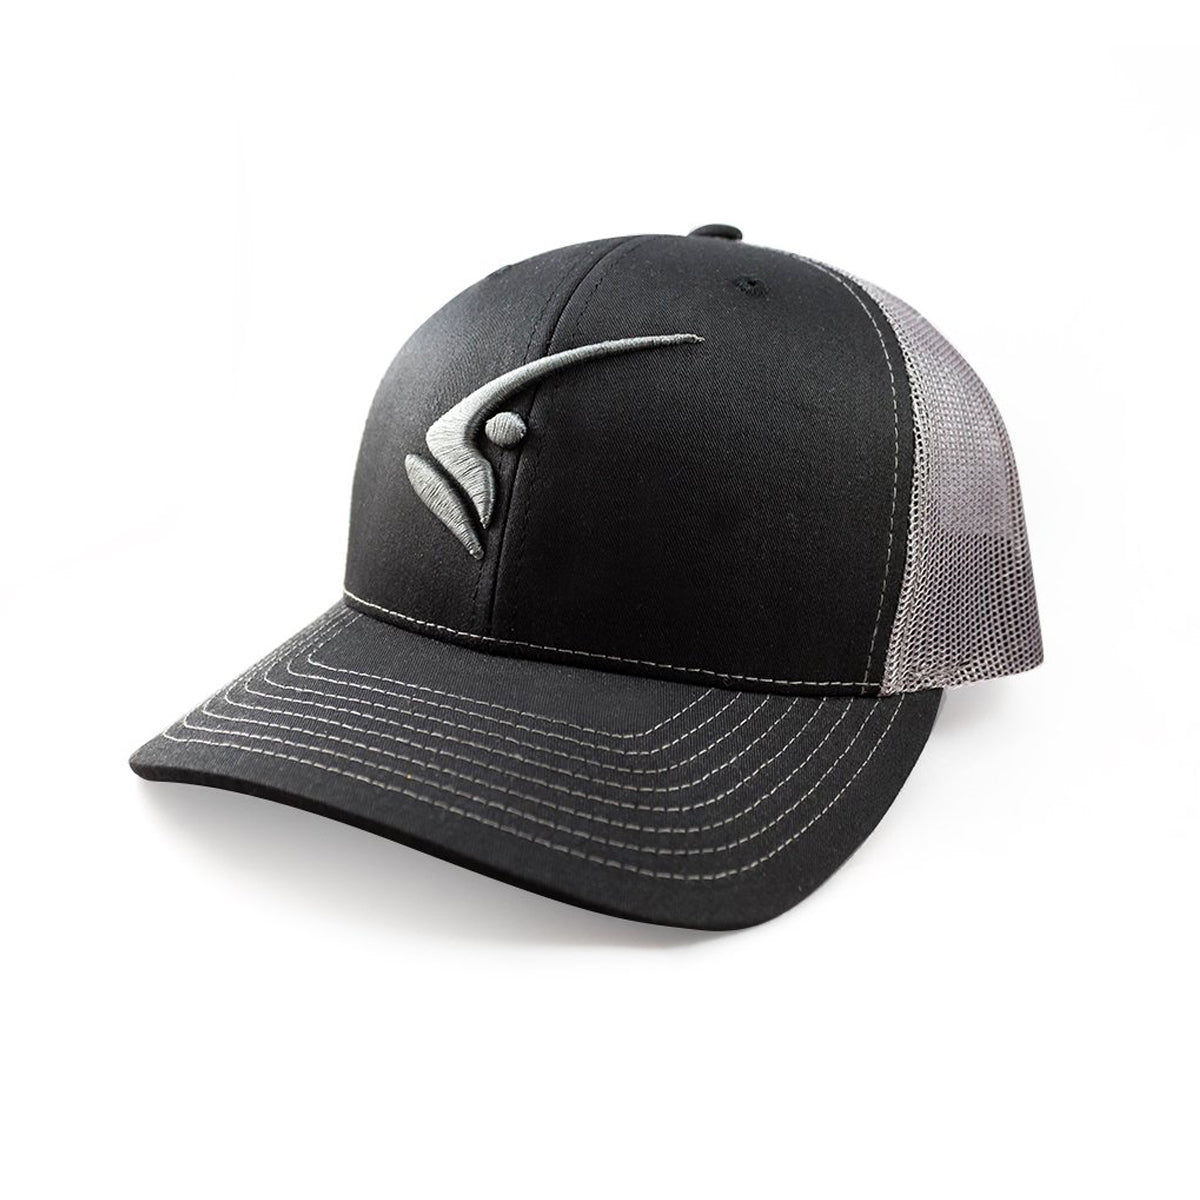 5851a00f7e889 Richardson 112 Trucker Cap with 3D Fish Head Logo